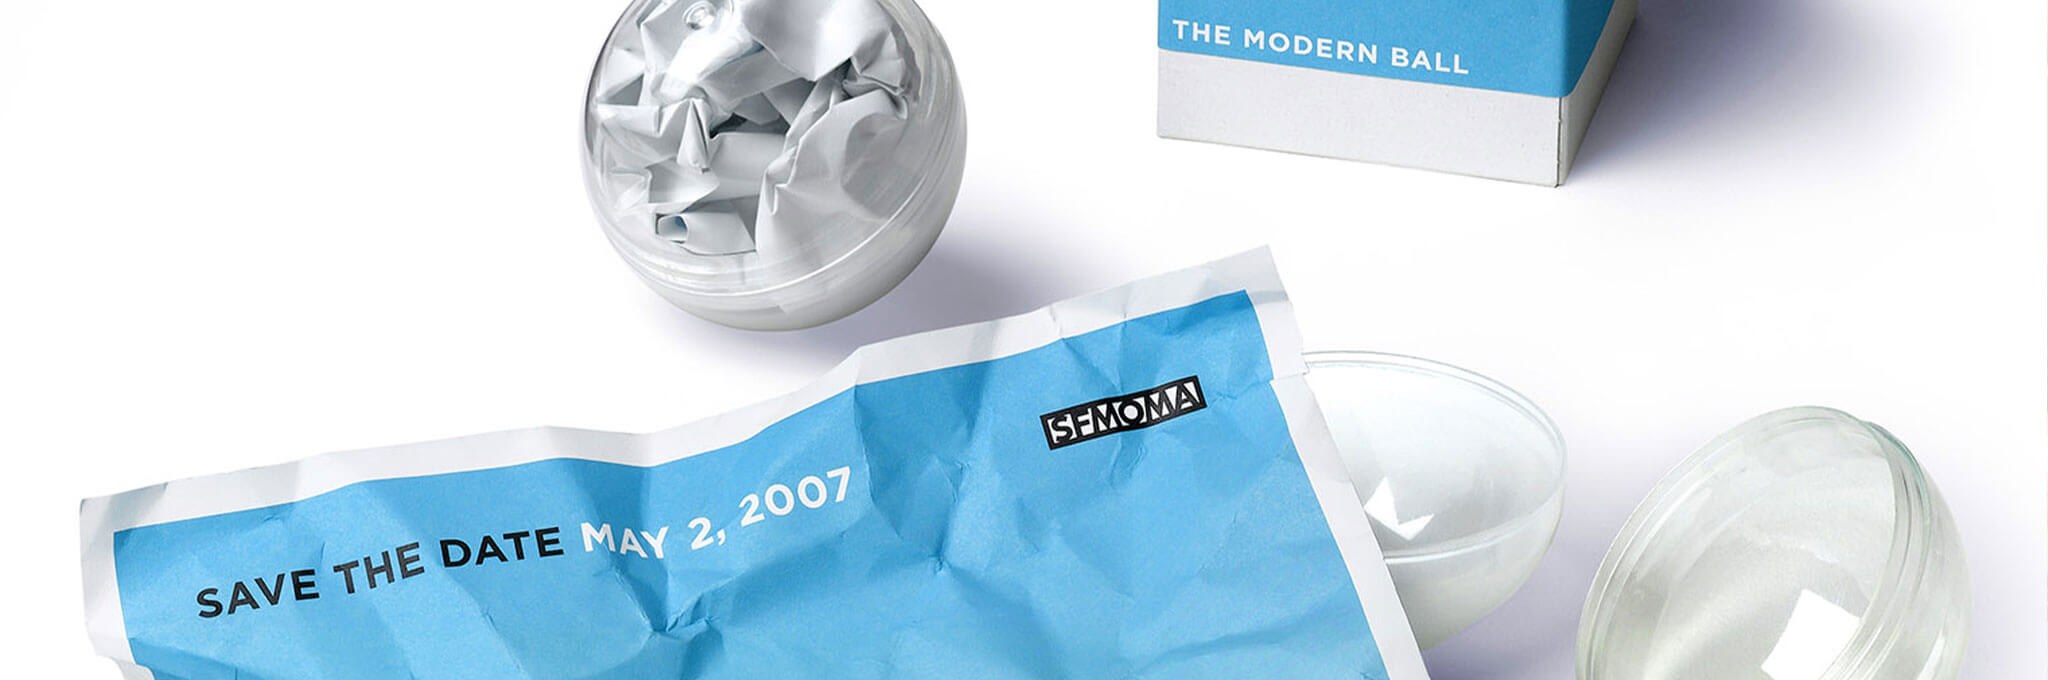 Crumpled paper ball with cropped blue May 2, 2007 Save the Date letterhead